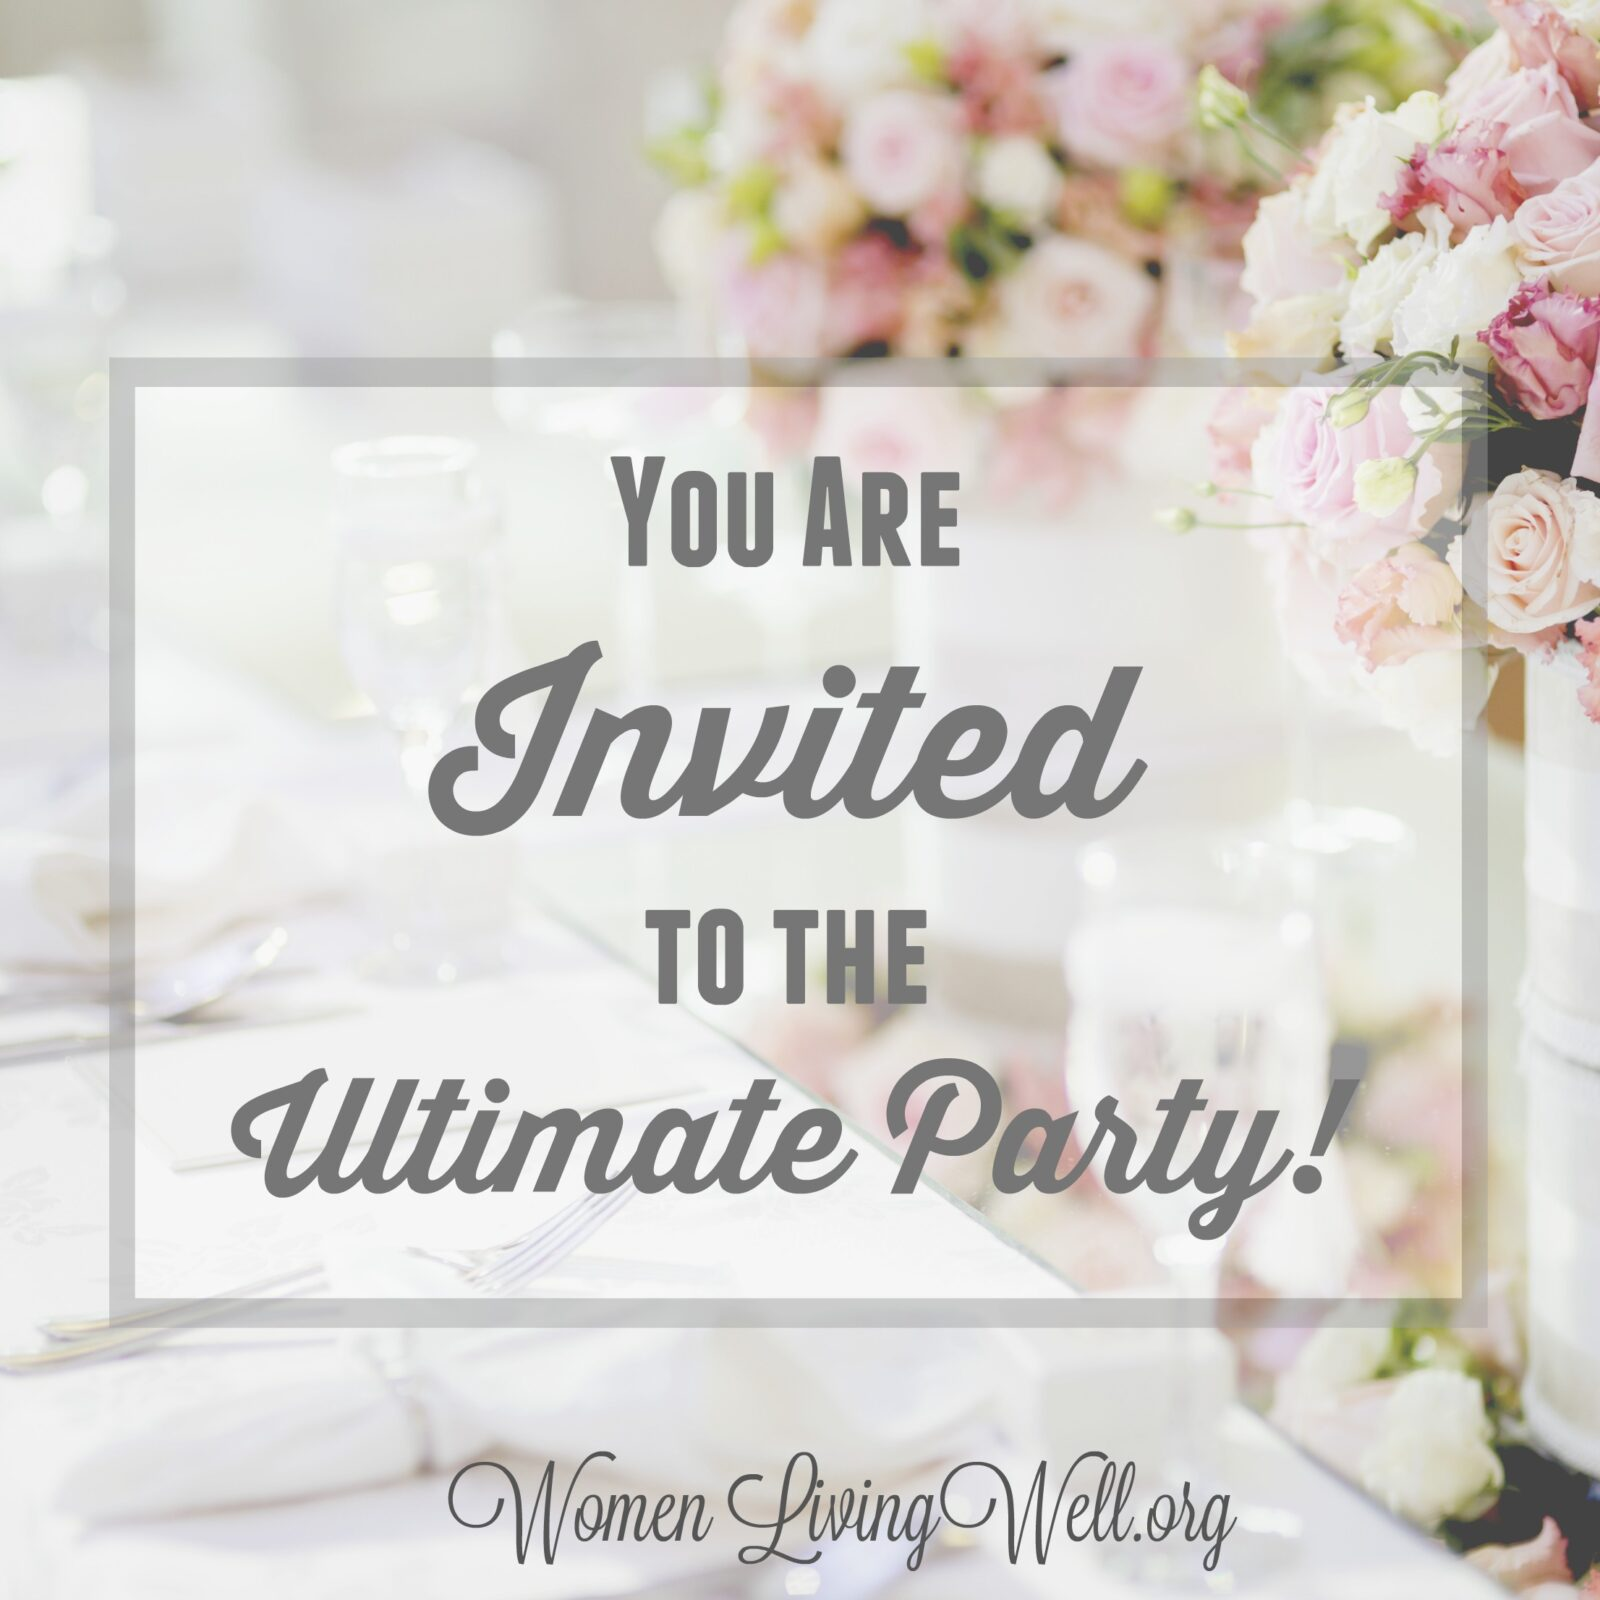 You Are Invited to the Ultimate Party! - Women Living Well